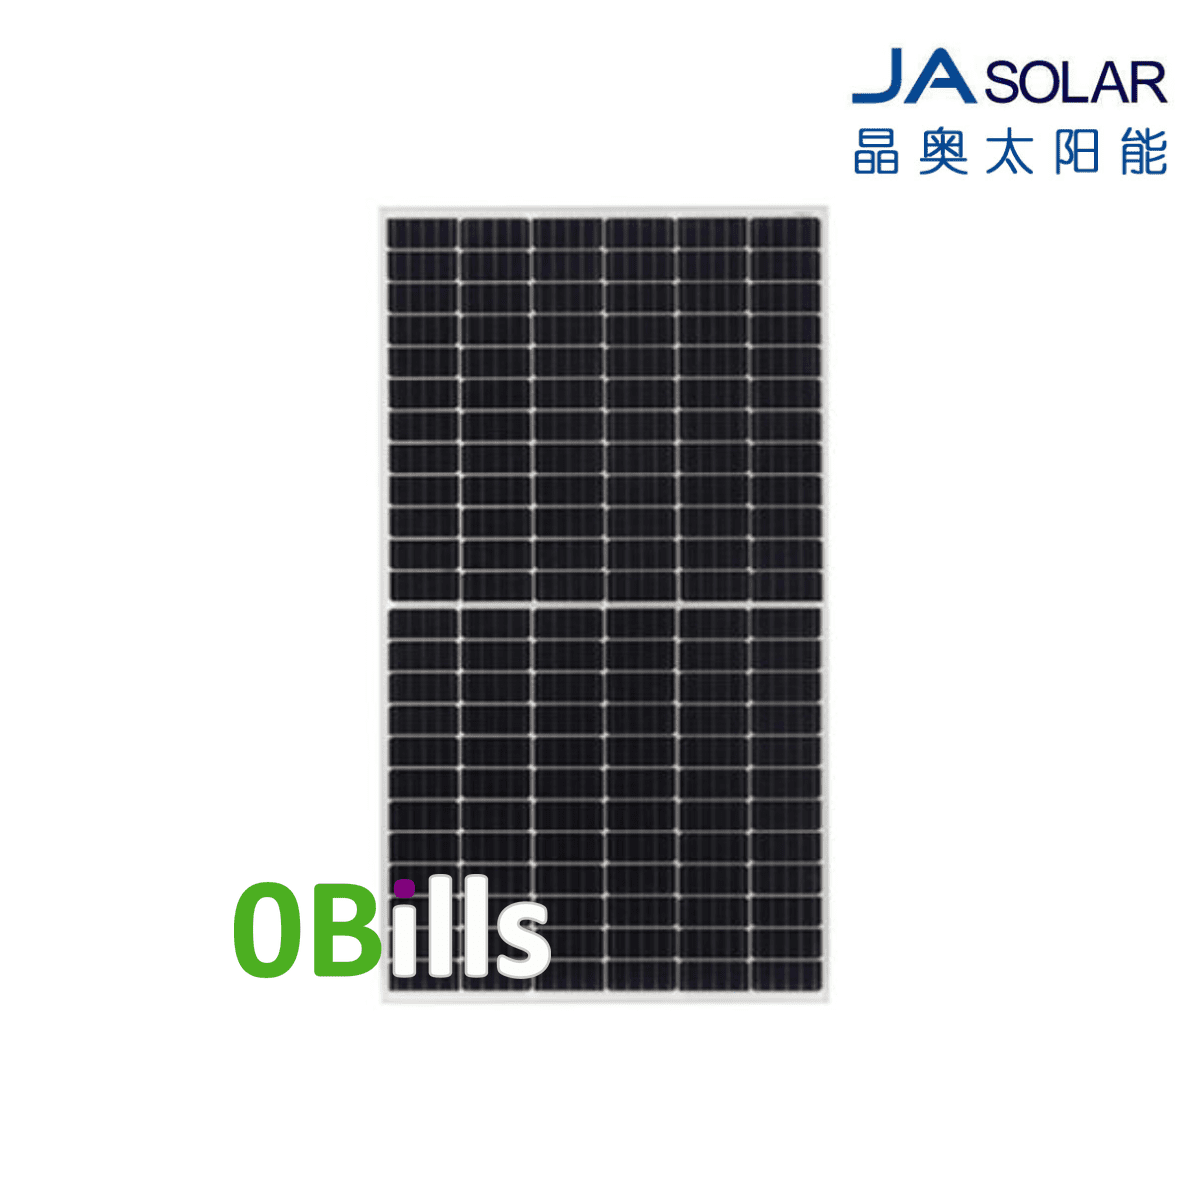 JA Solar JAM60S20-375/MR 375W Solar Panel MCS